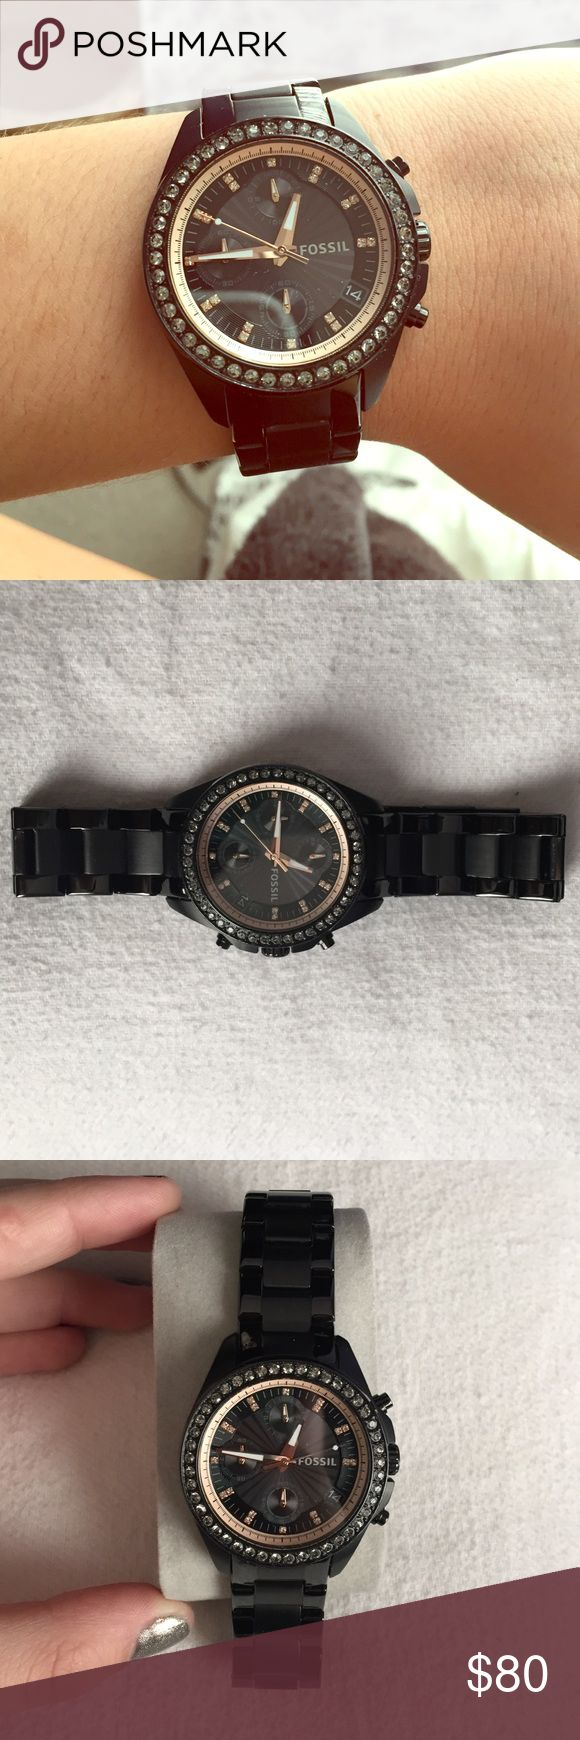 Fossil Black Decker Watch Black stainless steel Fossil watch. Price negotiable. Rare find and Like new, worn maybe 3 times. Still have the original box, tags, and links. Only selling because I just got another black watch and don't need two. Fossil Accessories Watches